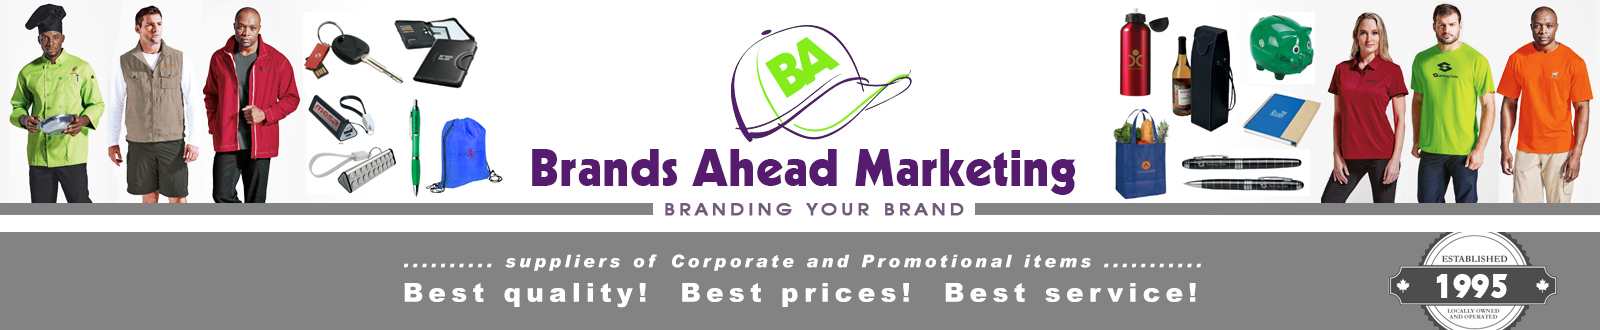 brands ahead marketing for promotional items corporate gifts and branded apparel clothing